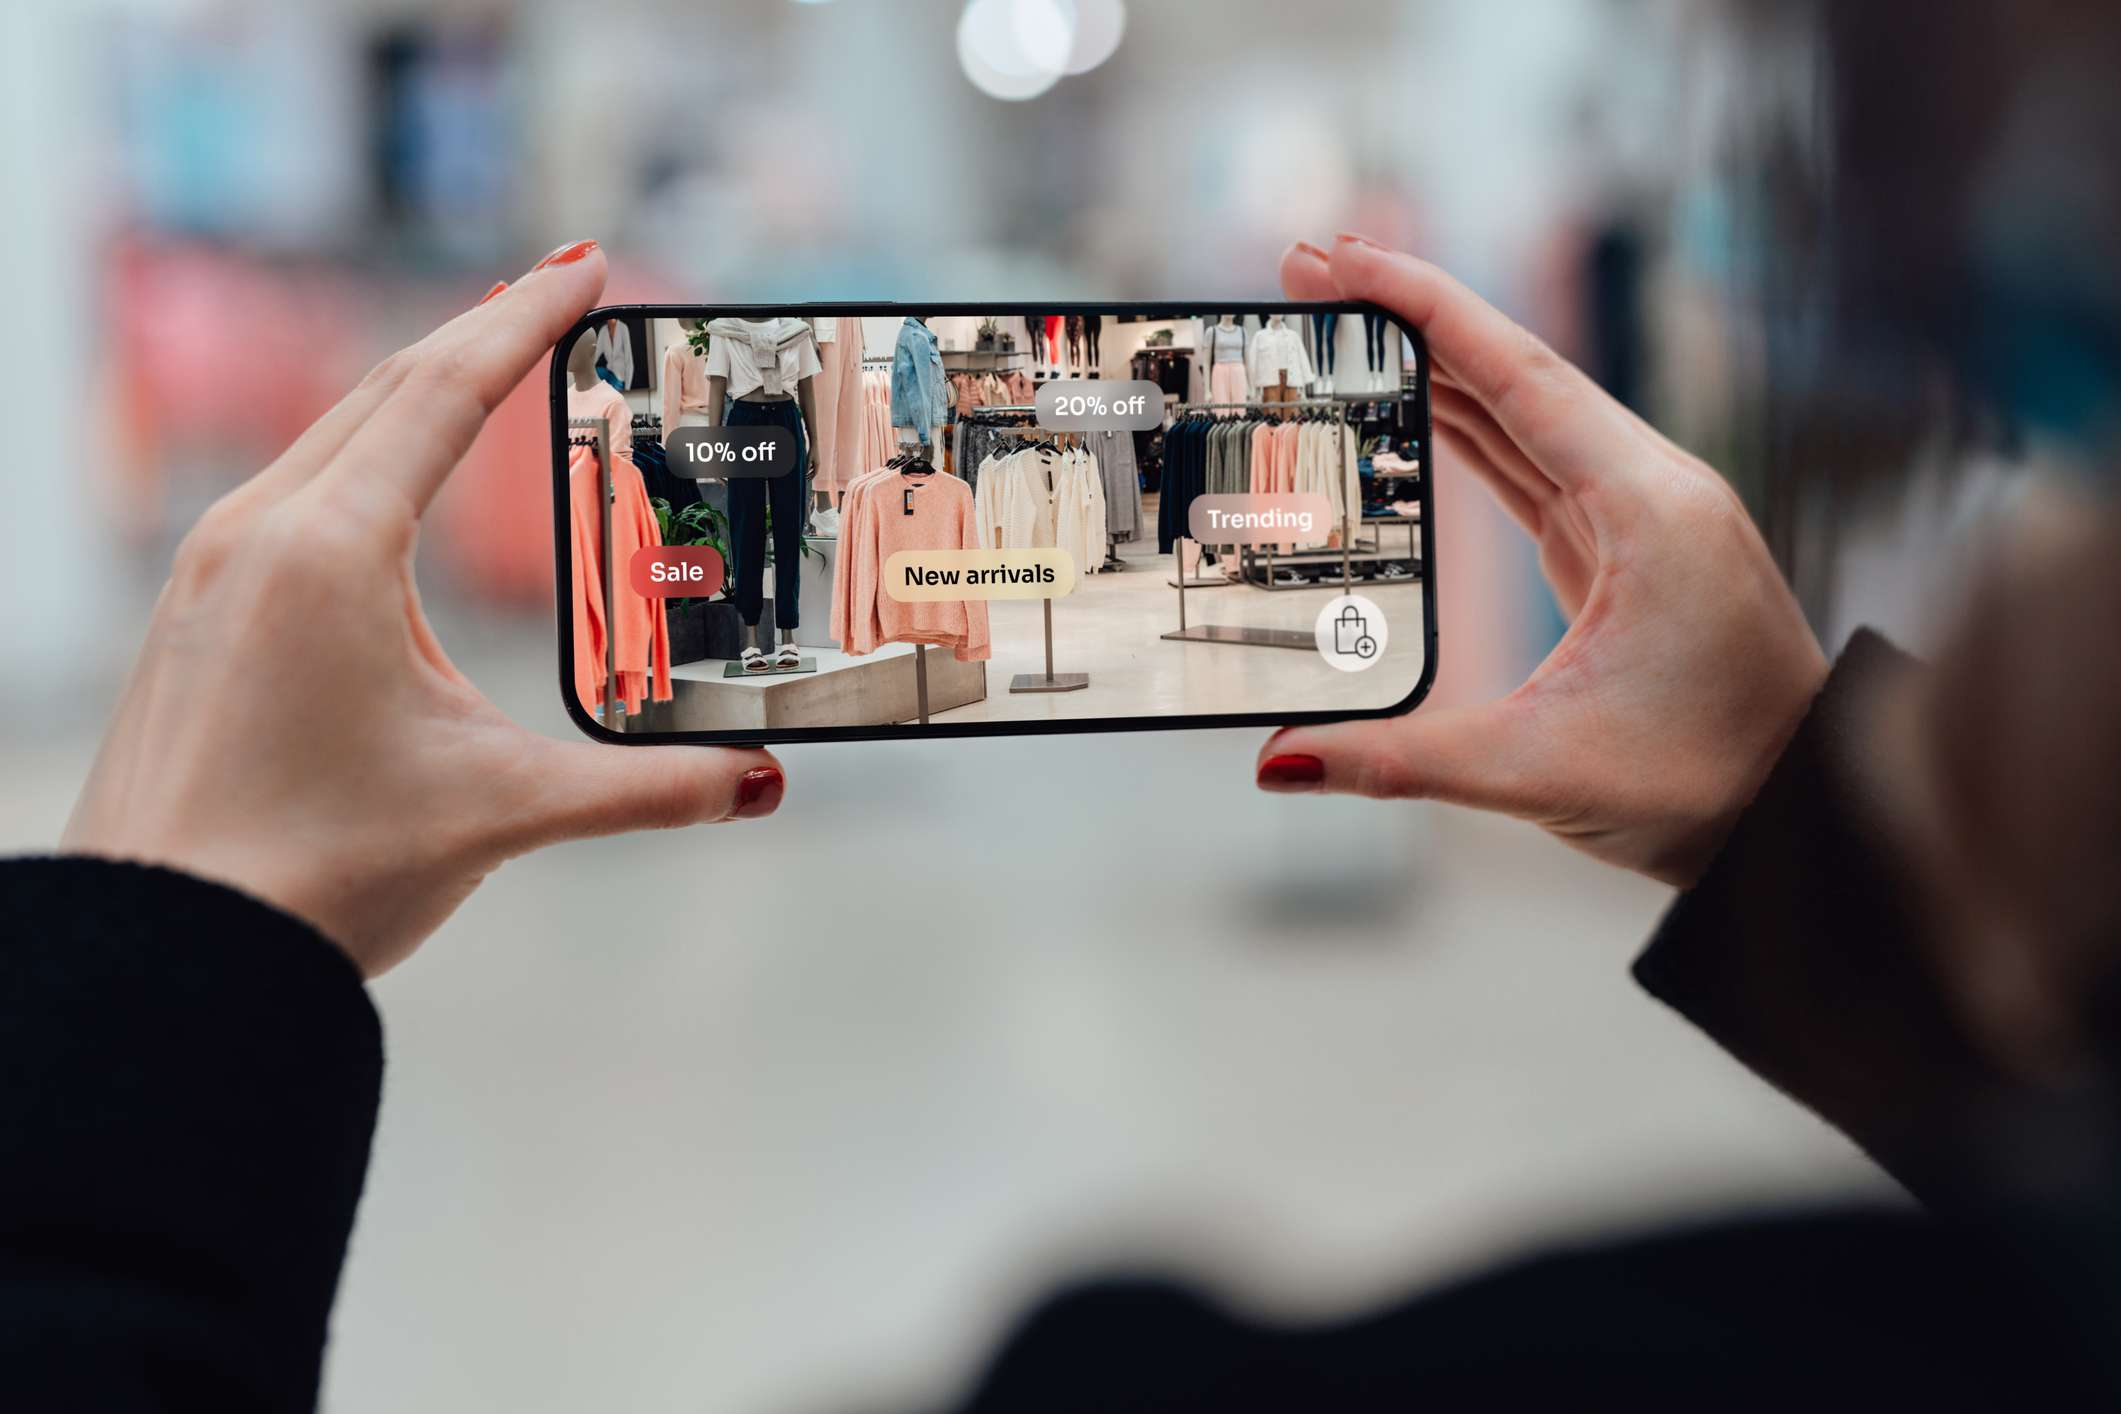 Someone using an augmented reality app while shopping at a clothing store.